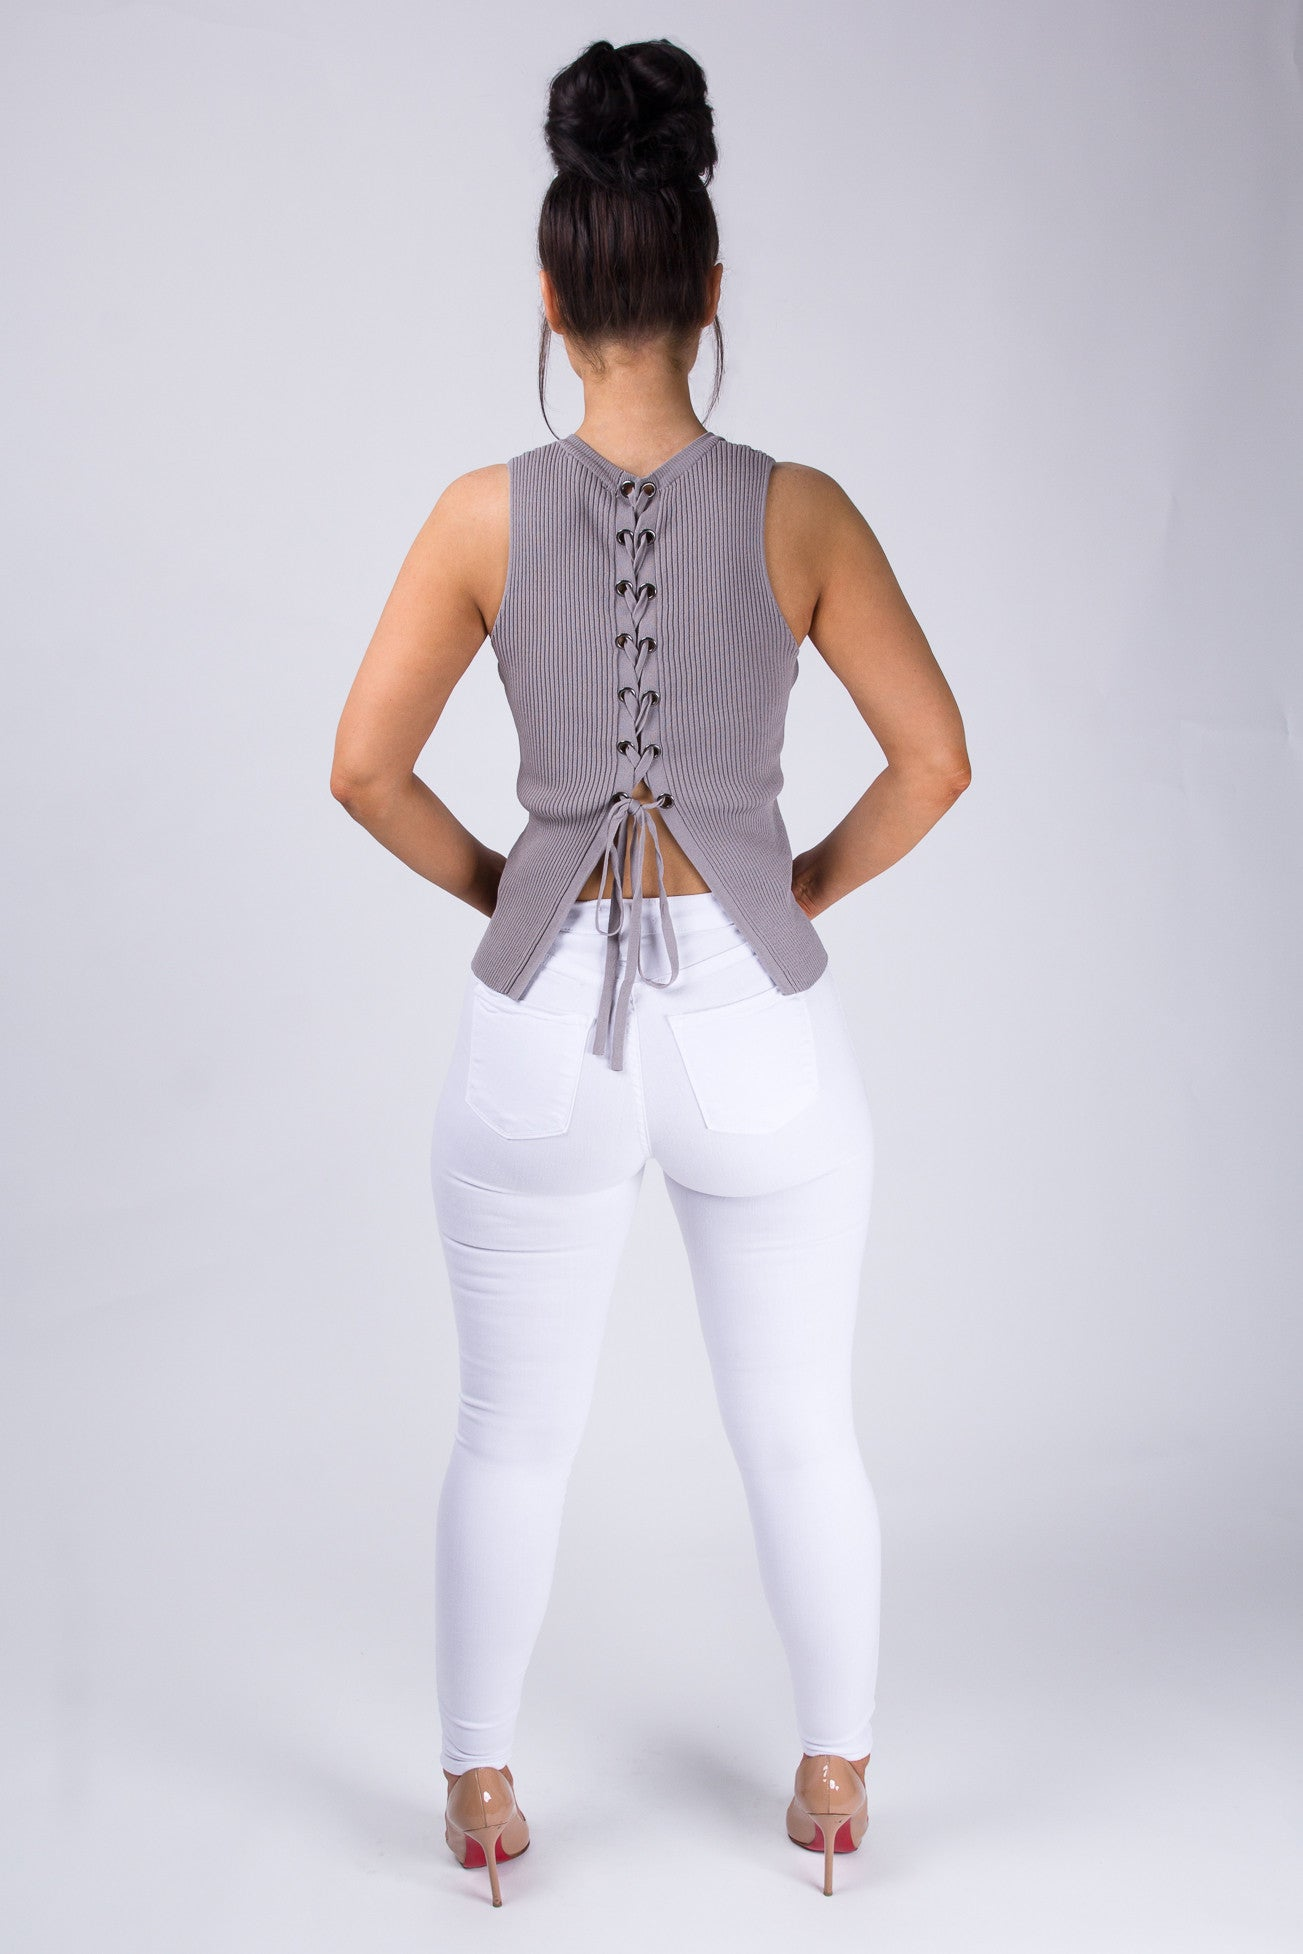 Ribbed Lace-Up Back Top - Gray